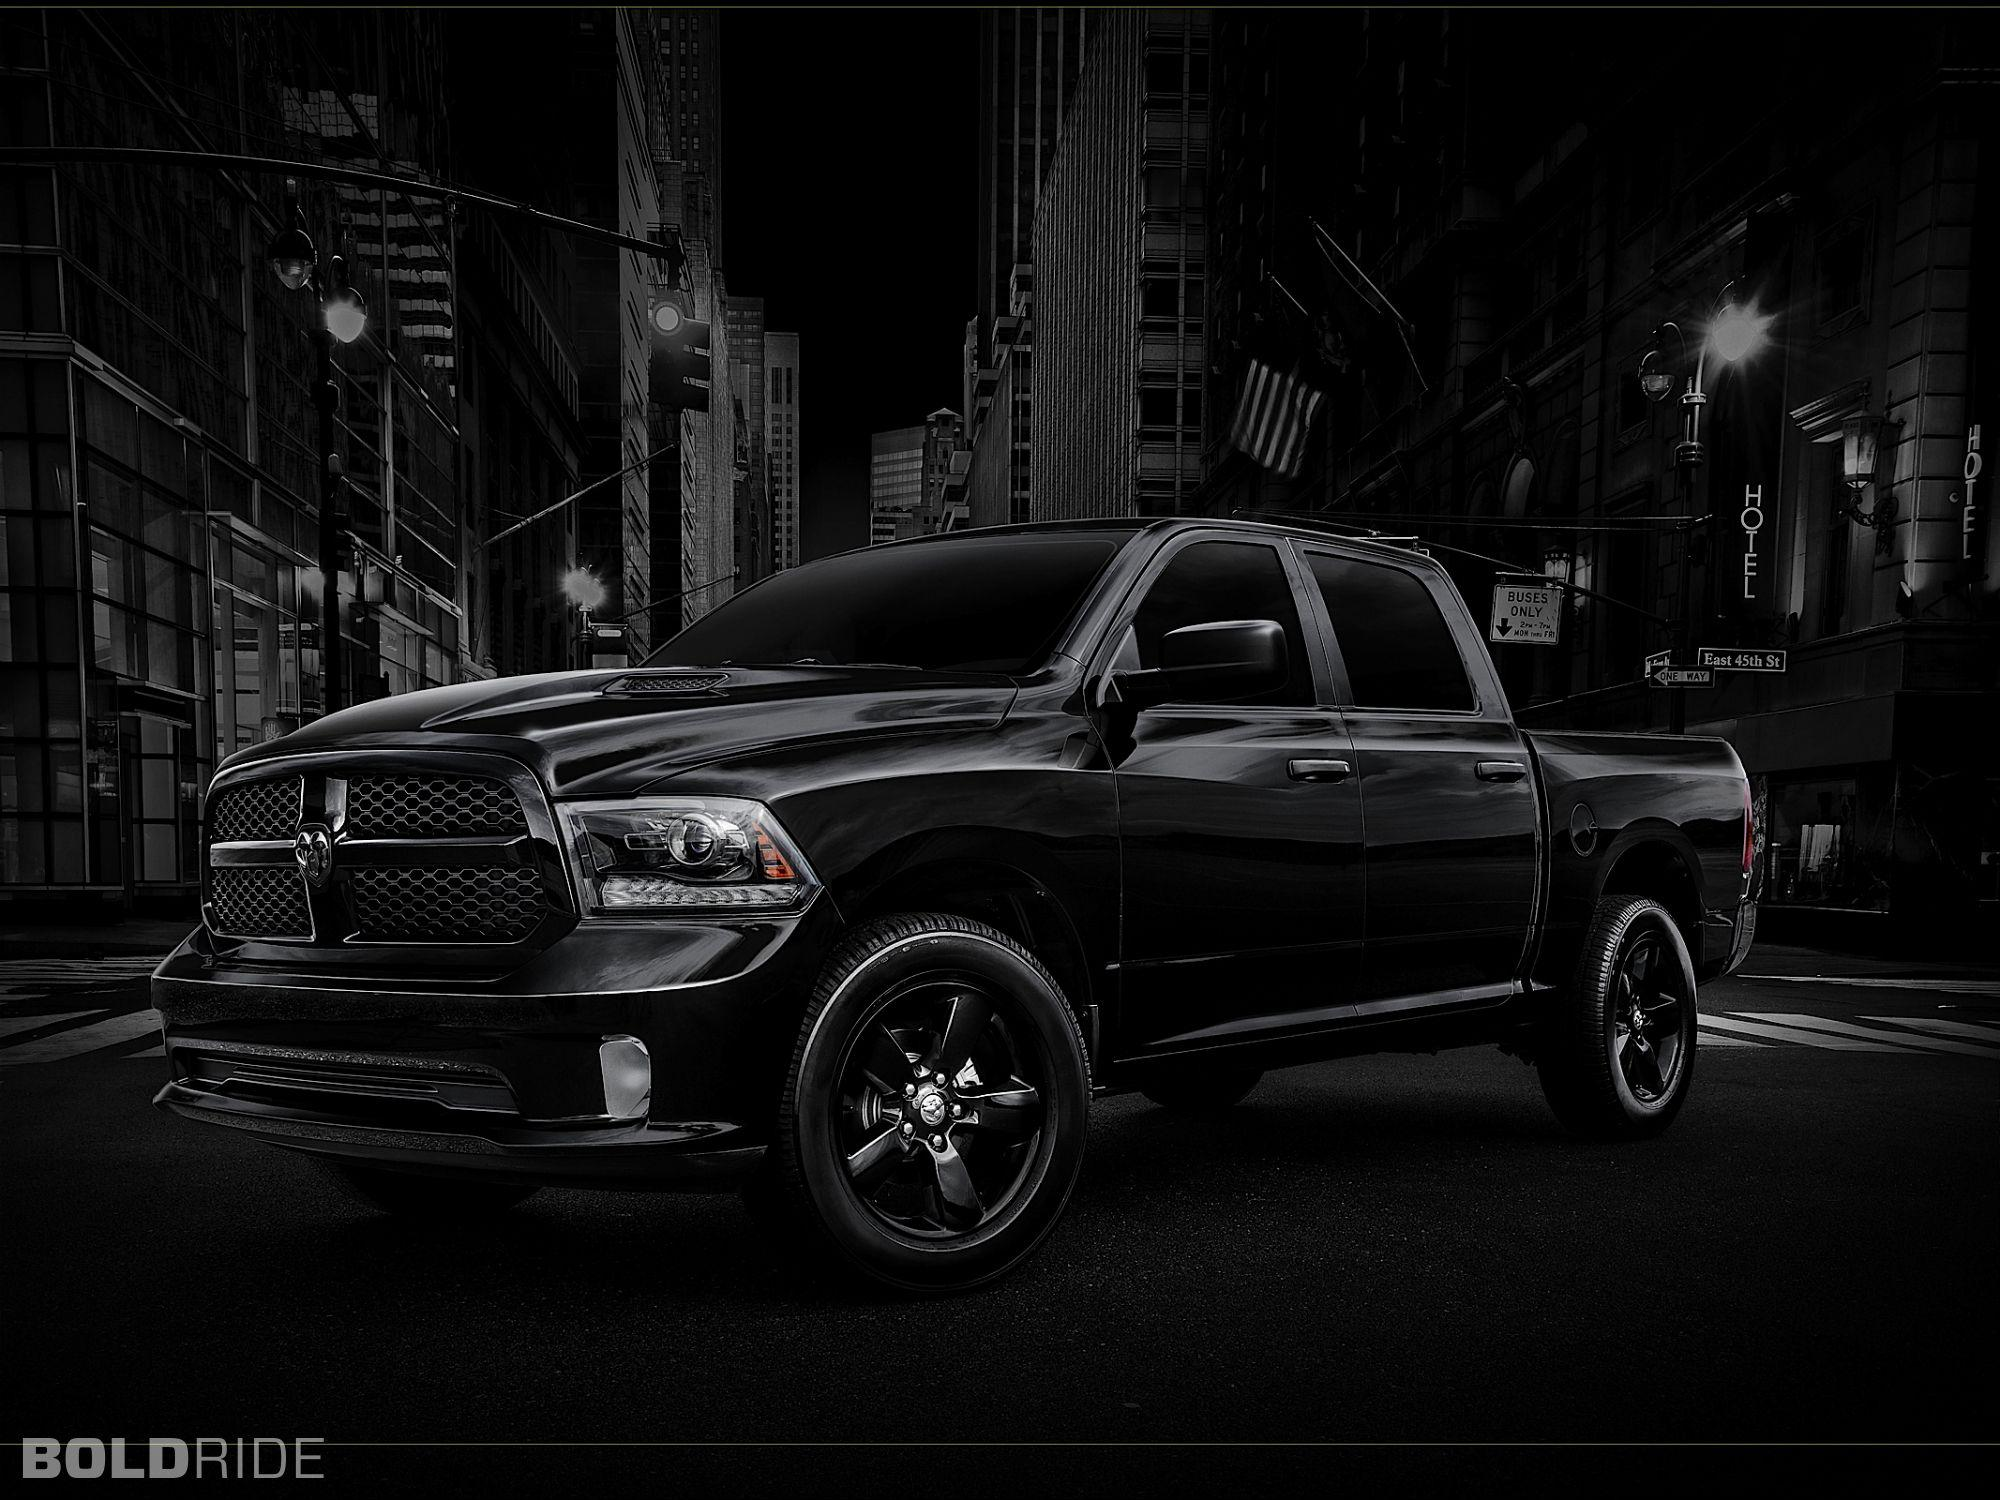 Black Dodge Ram 1500 Full HD Wallpaper and Background Image ...